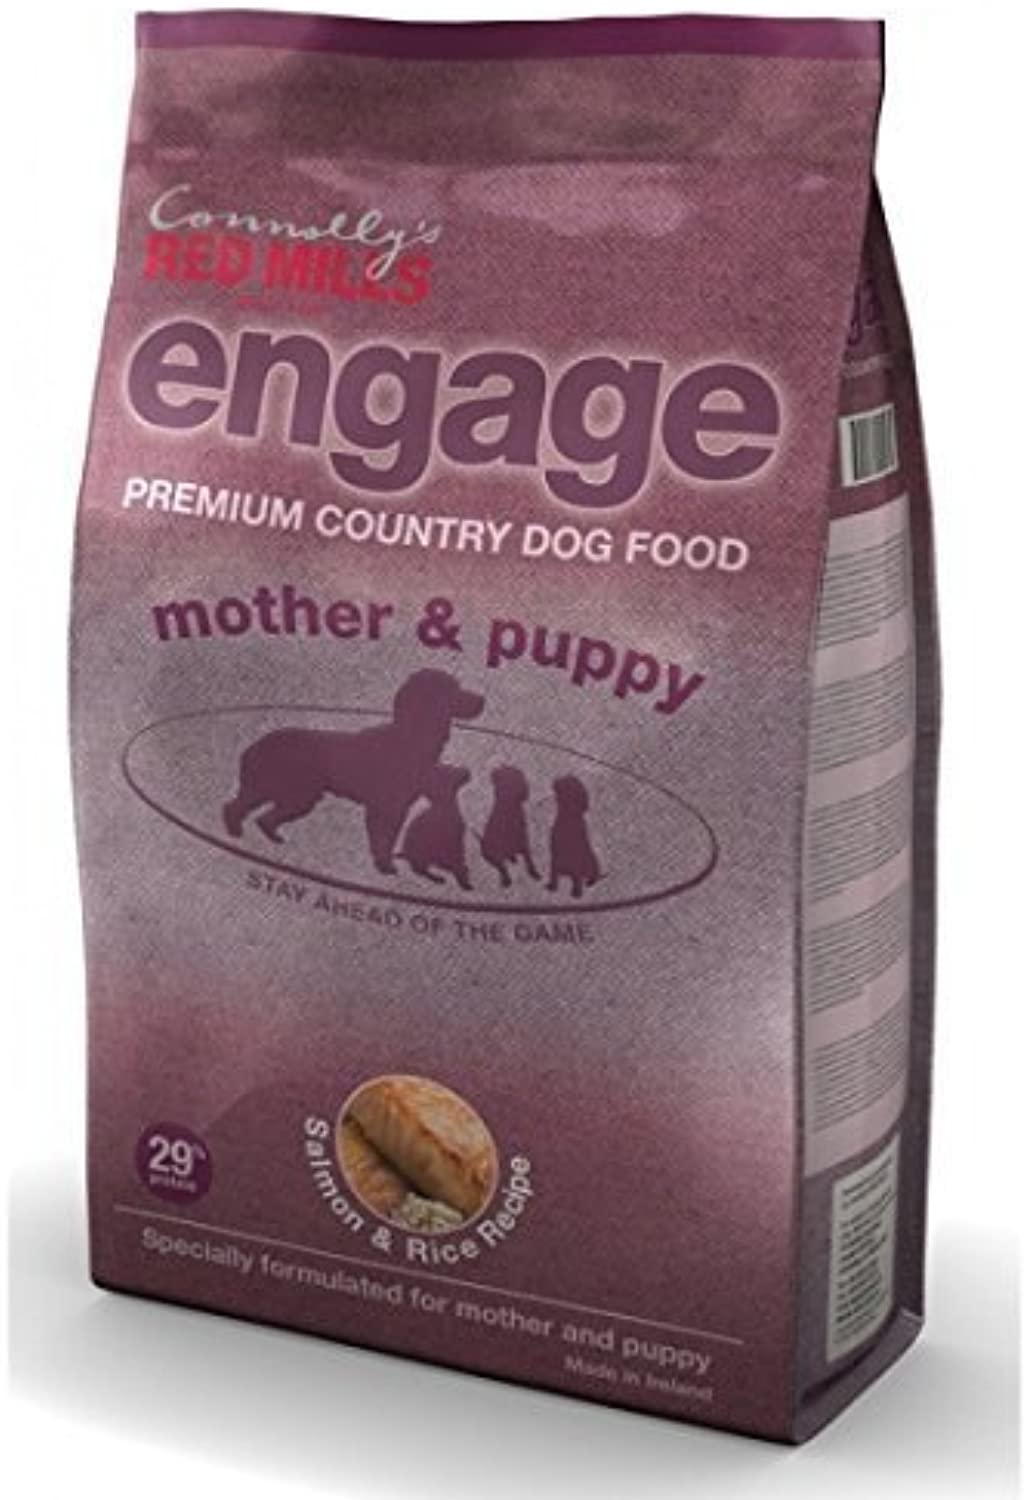 Red Mills Engage Mother & Puppy Dog Food 3kg